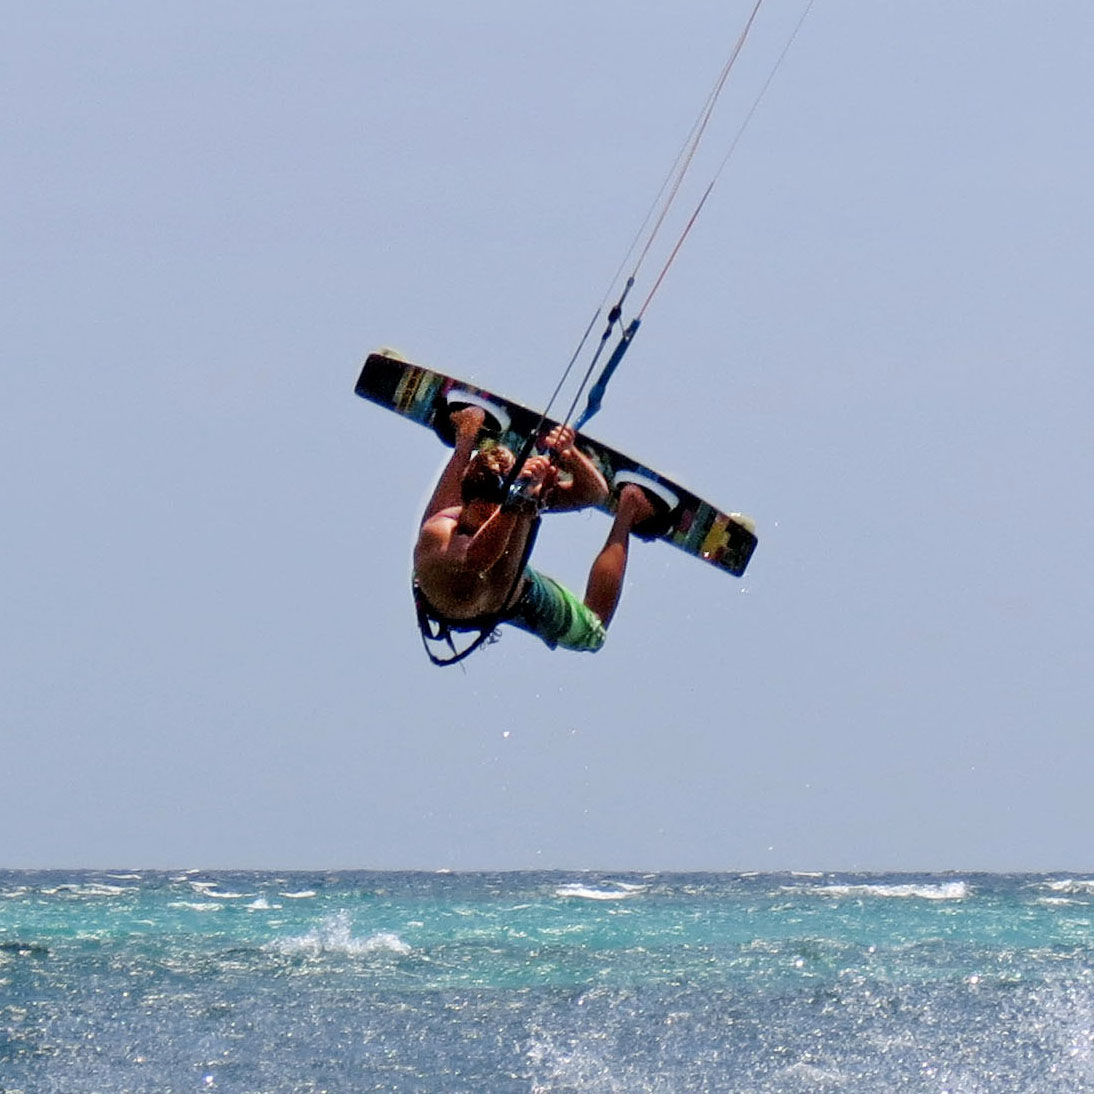 Kiteinstructor Martin was joining the team from Funboard Center Boracay in 2013/14.